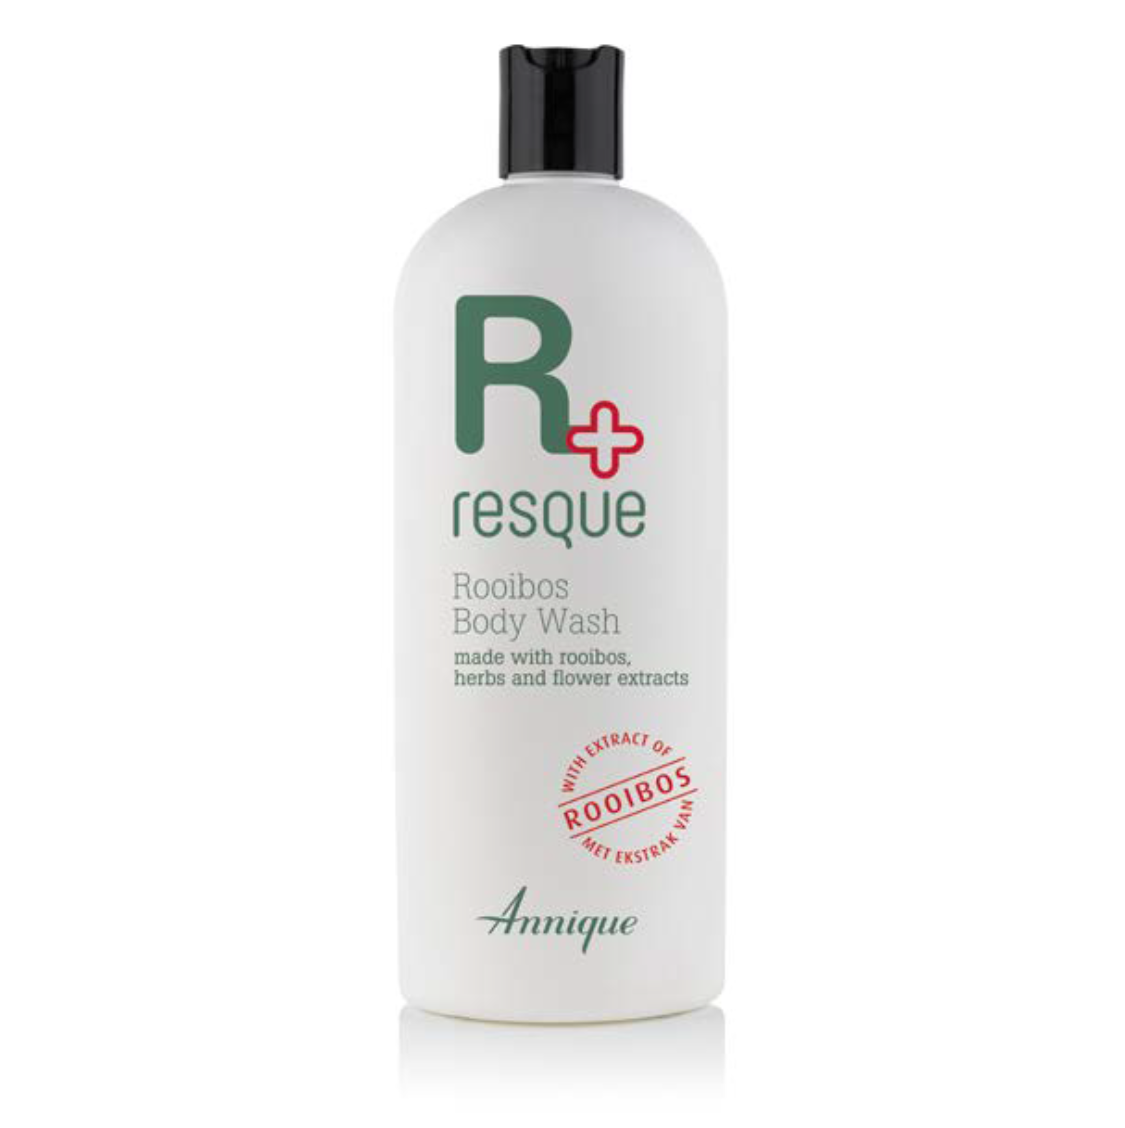 Annique Resque Rooibos Body Wash 400ml